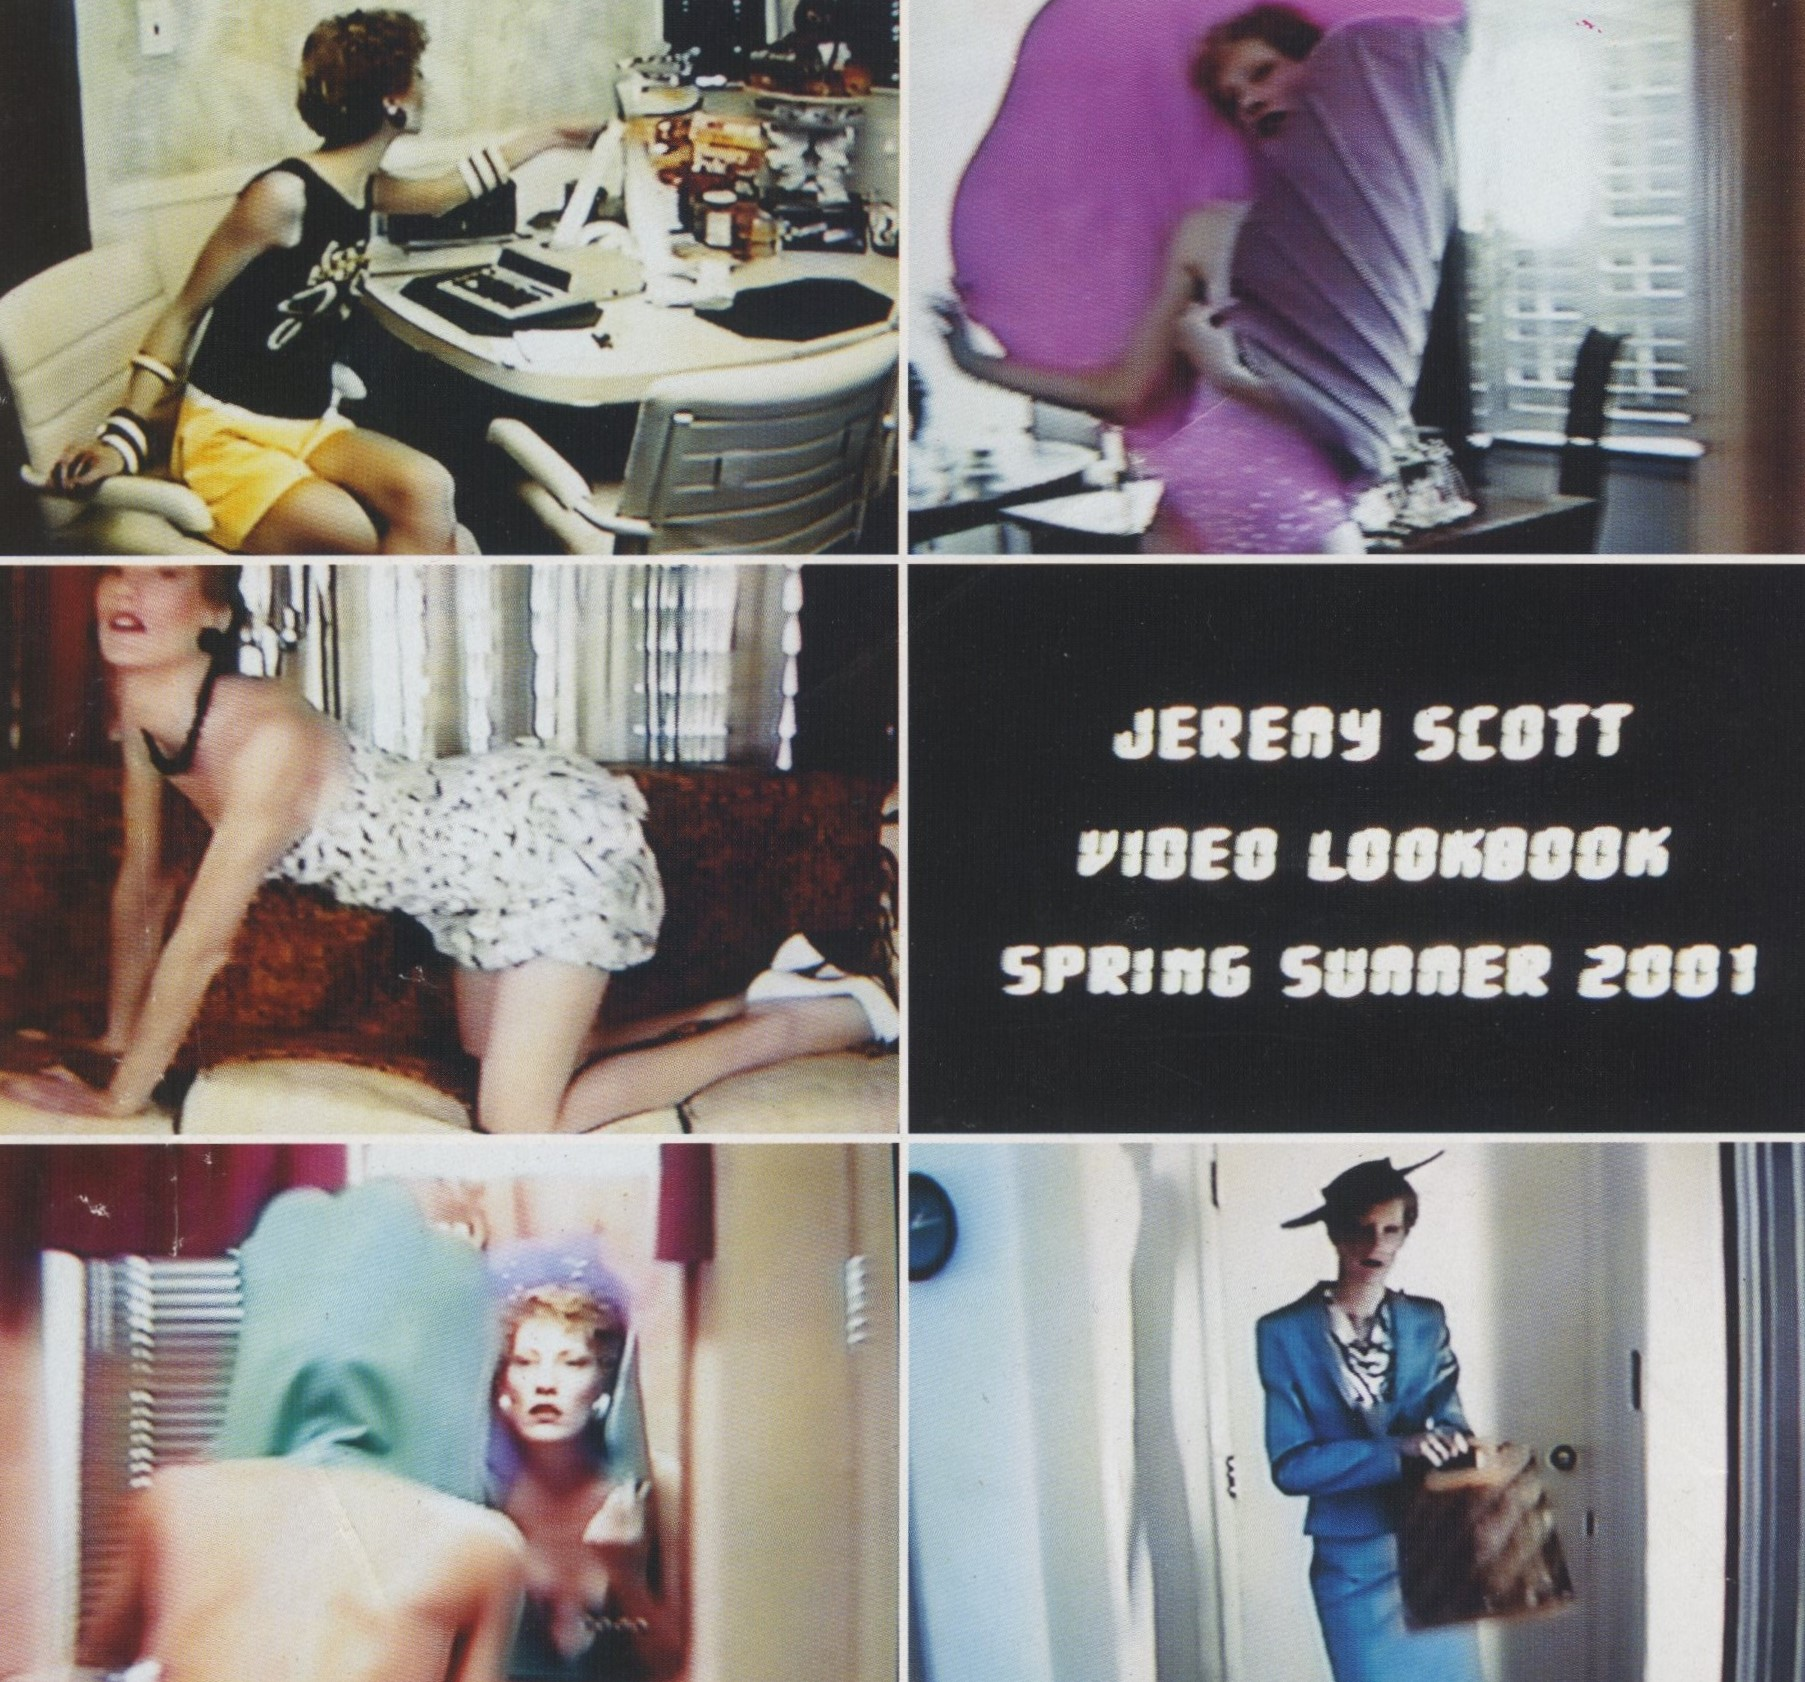 JEREMY SCOTT | SPRING/SUMMER 2001 | VIDEO STILLS MARTINE BOULARD